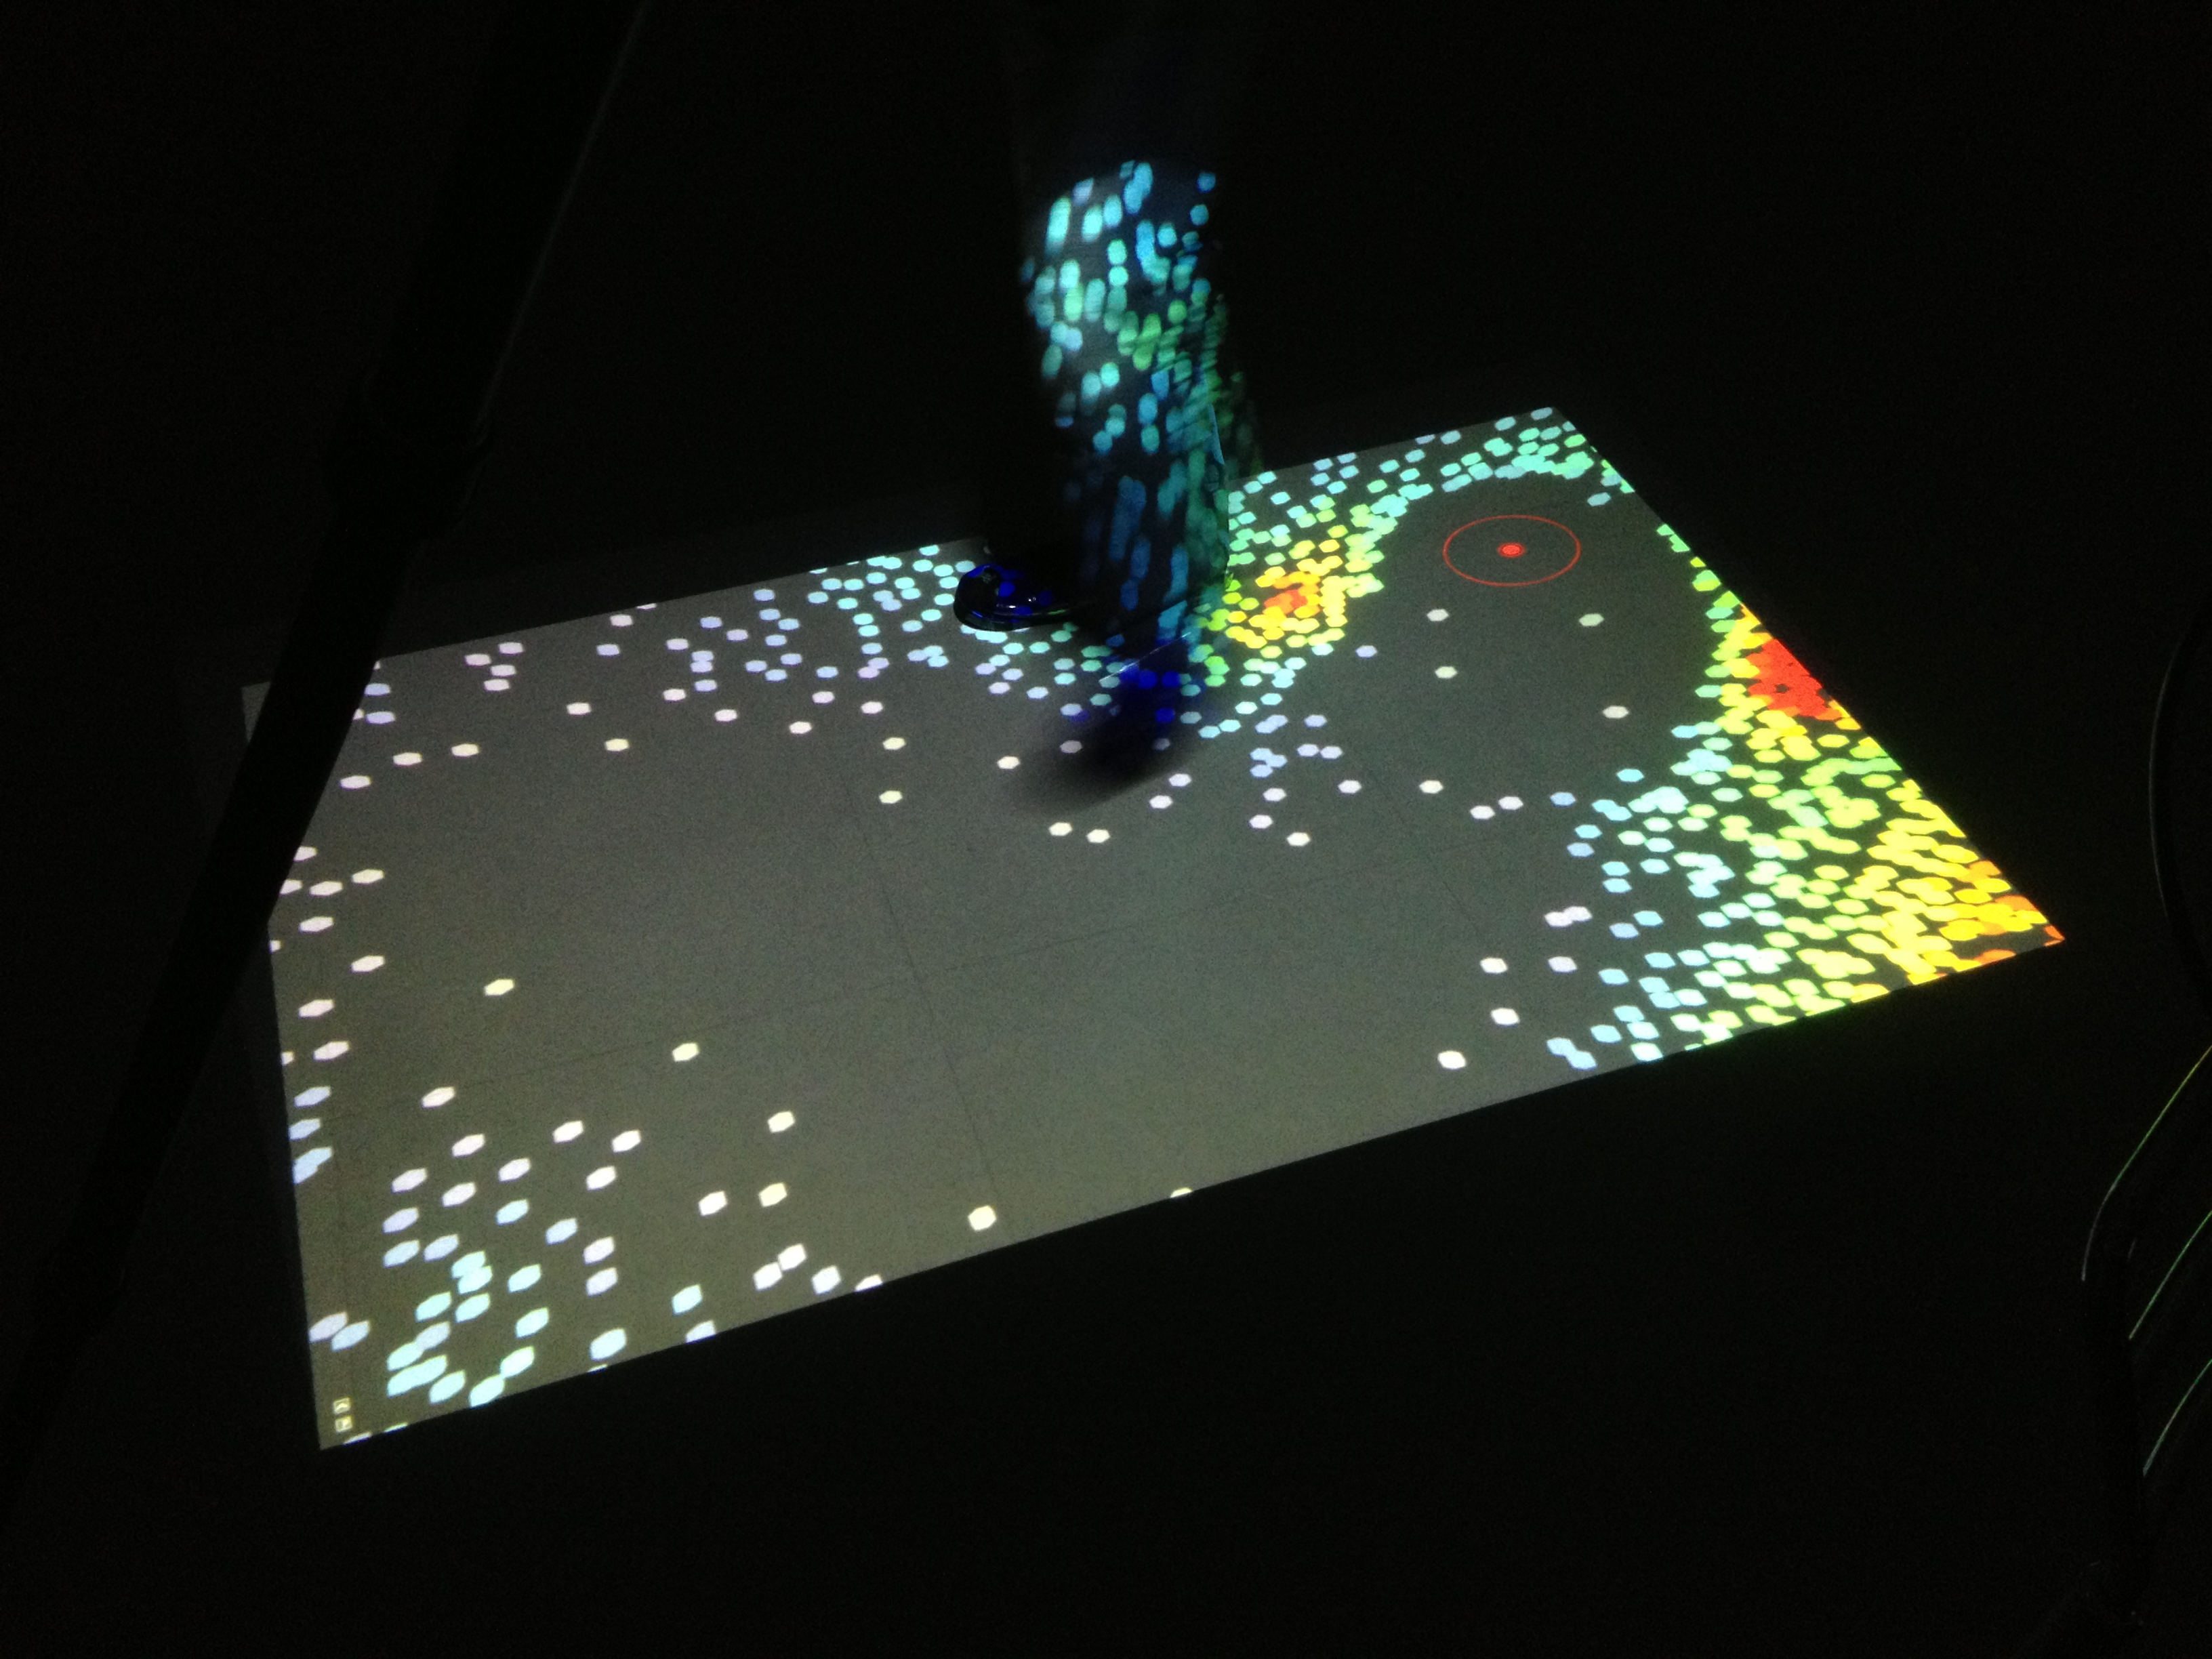 Interactive video installation with